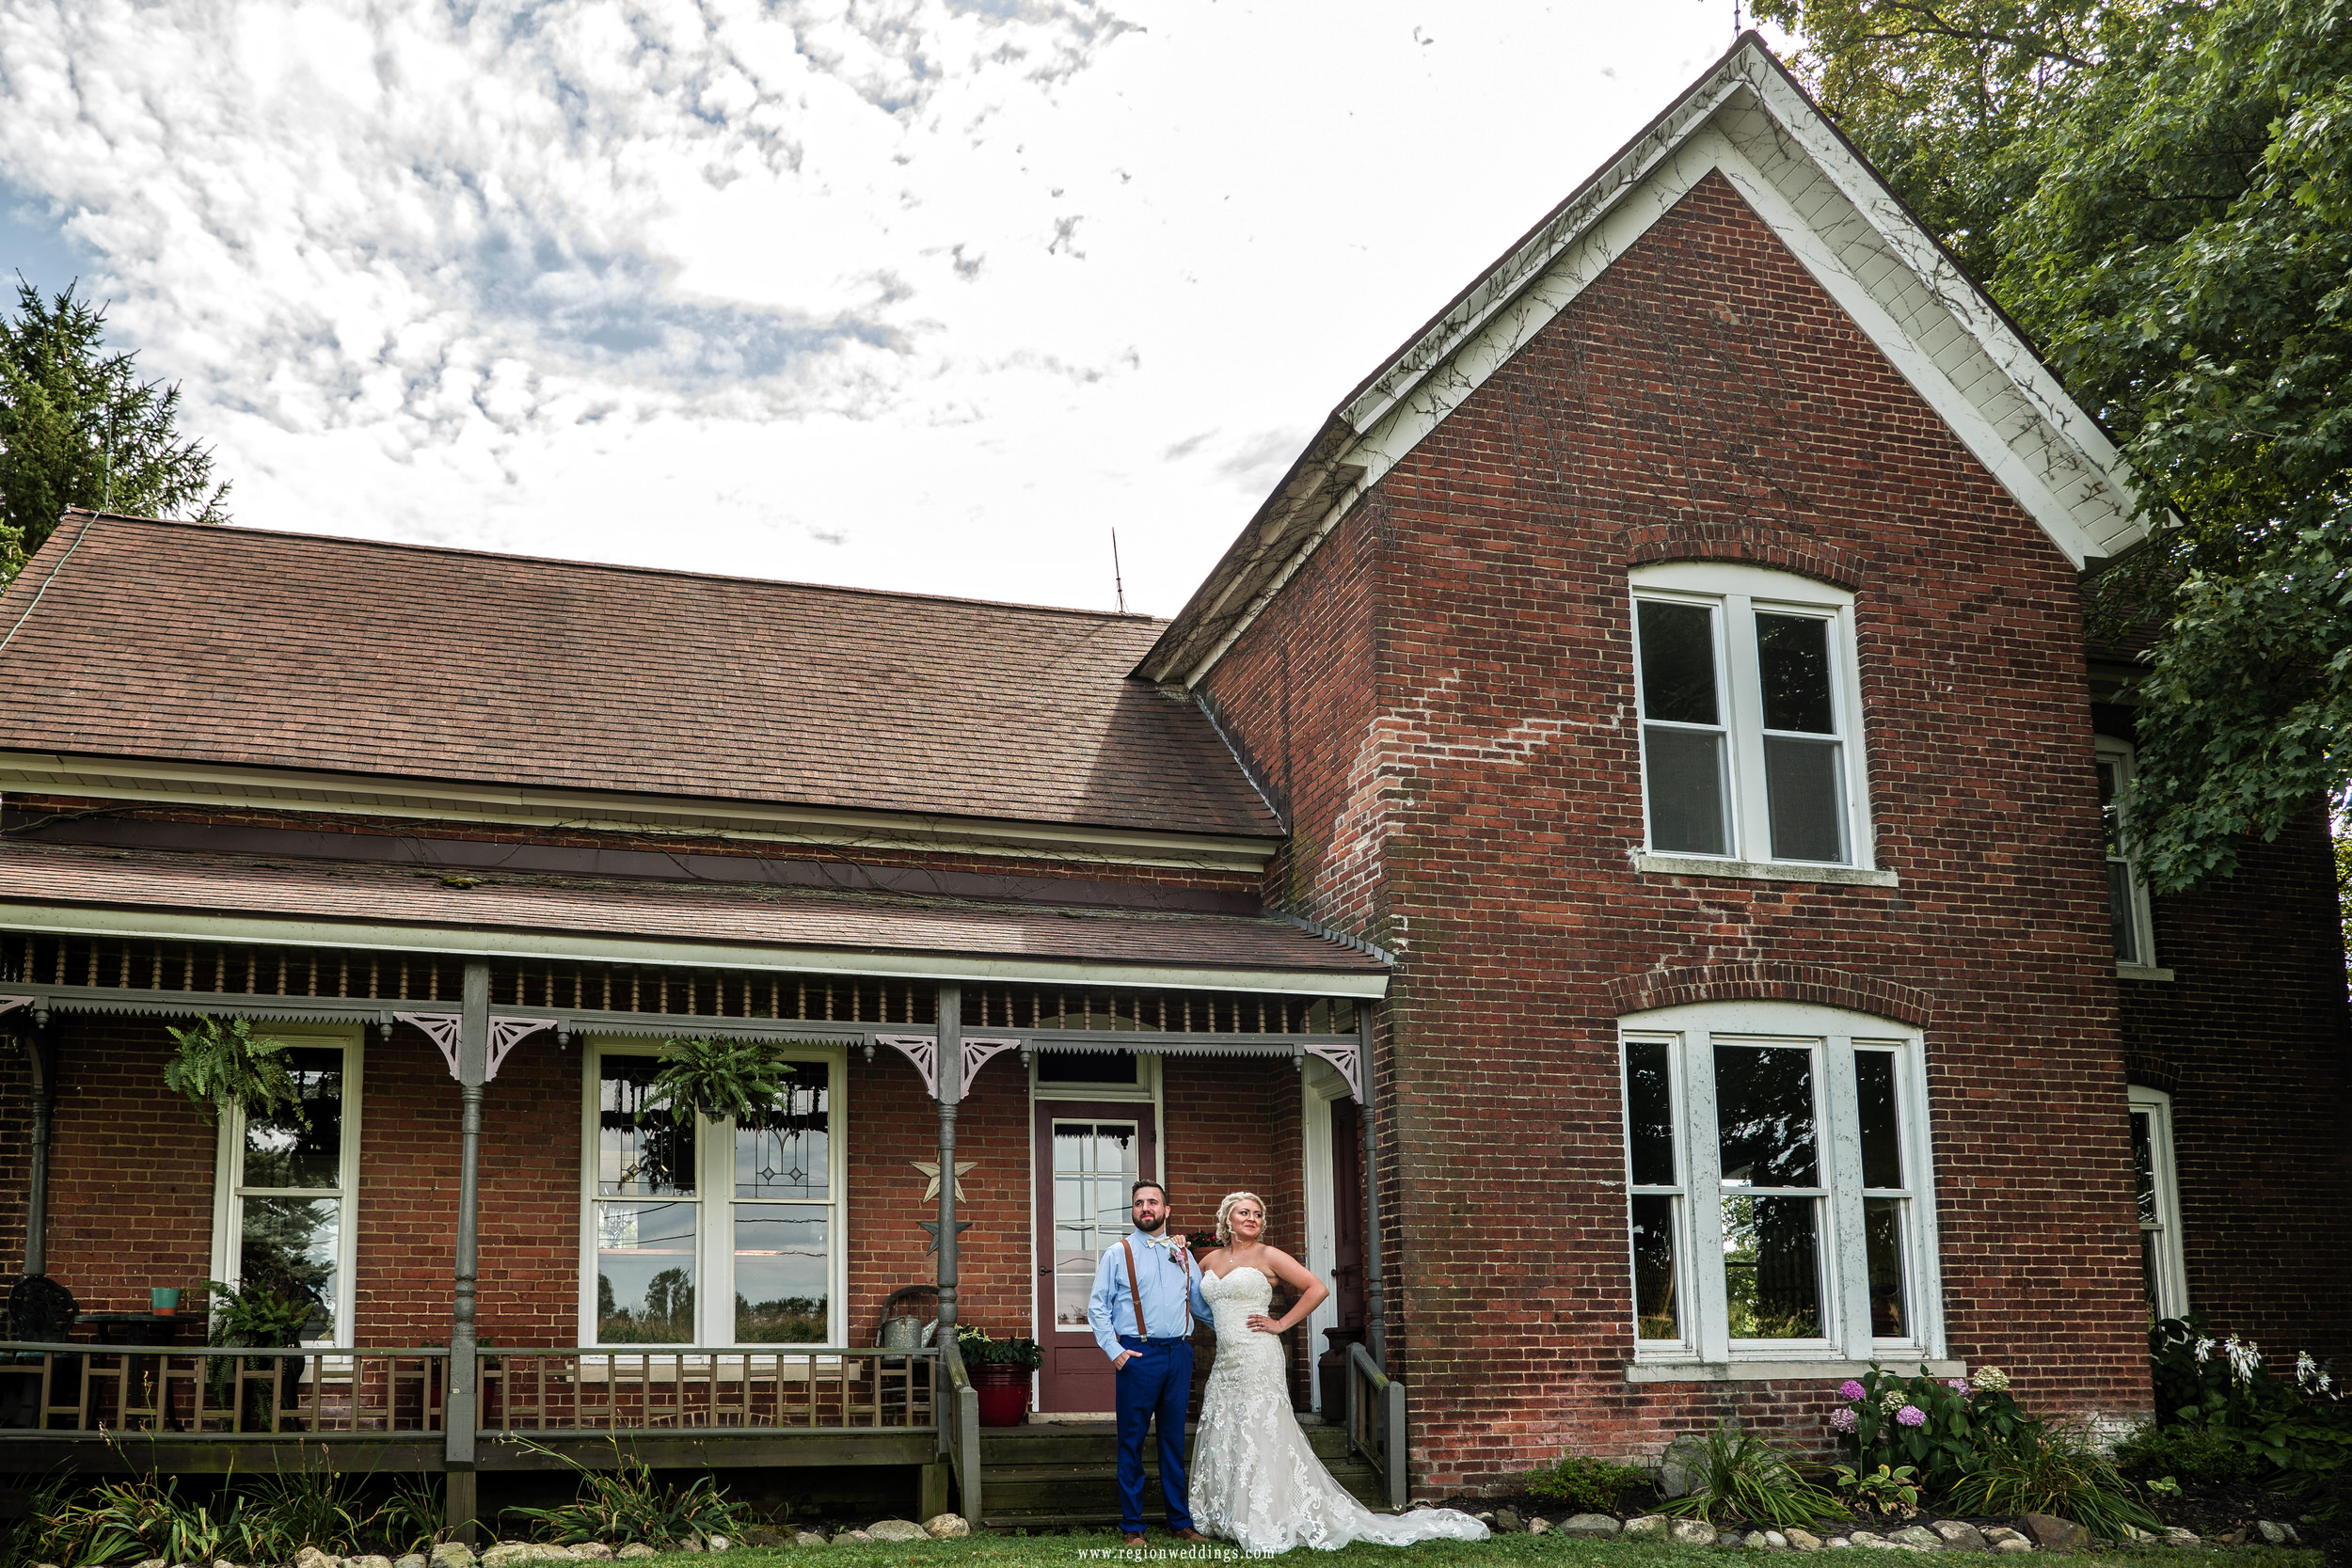 Bride and groom in front of the historic building at Four Corners Winery in Valparaiso, Indiana.